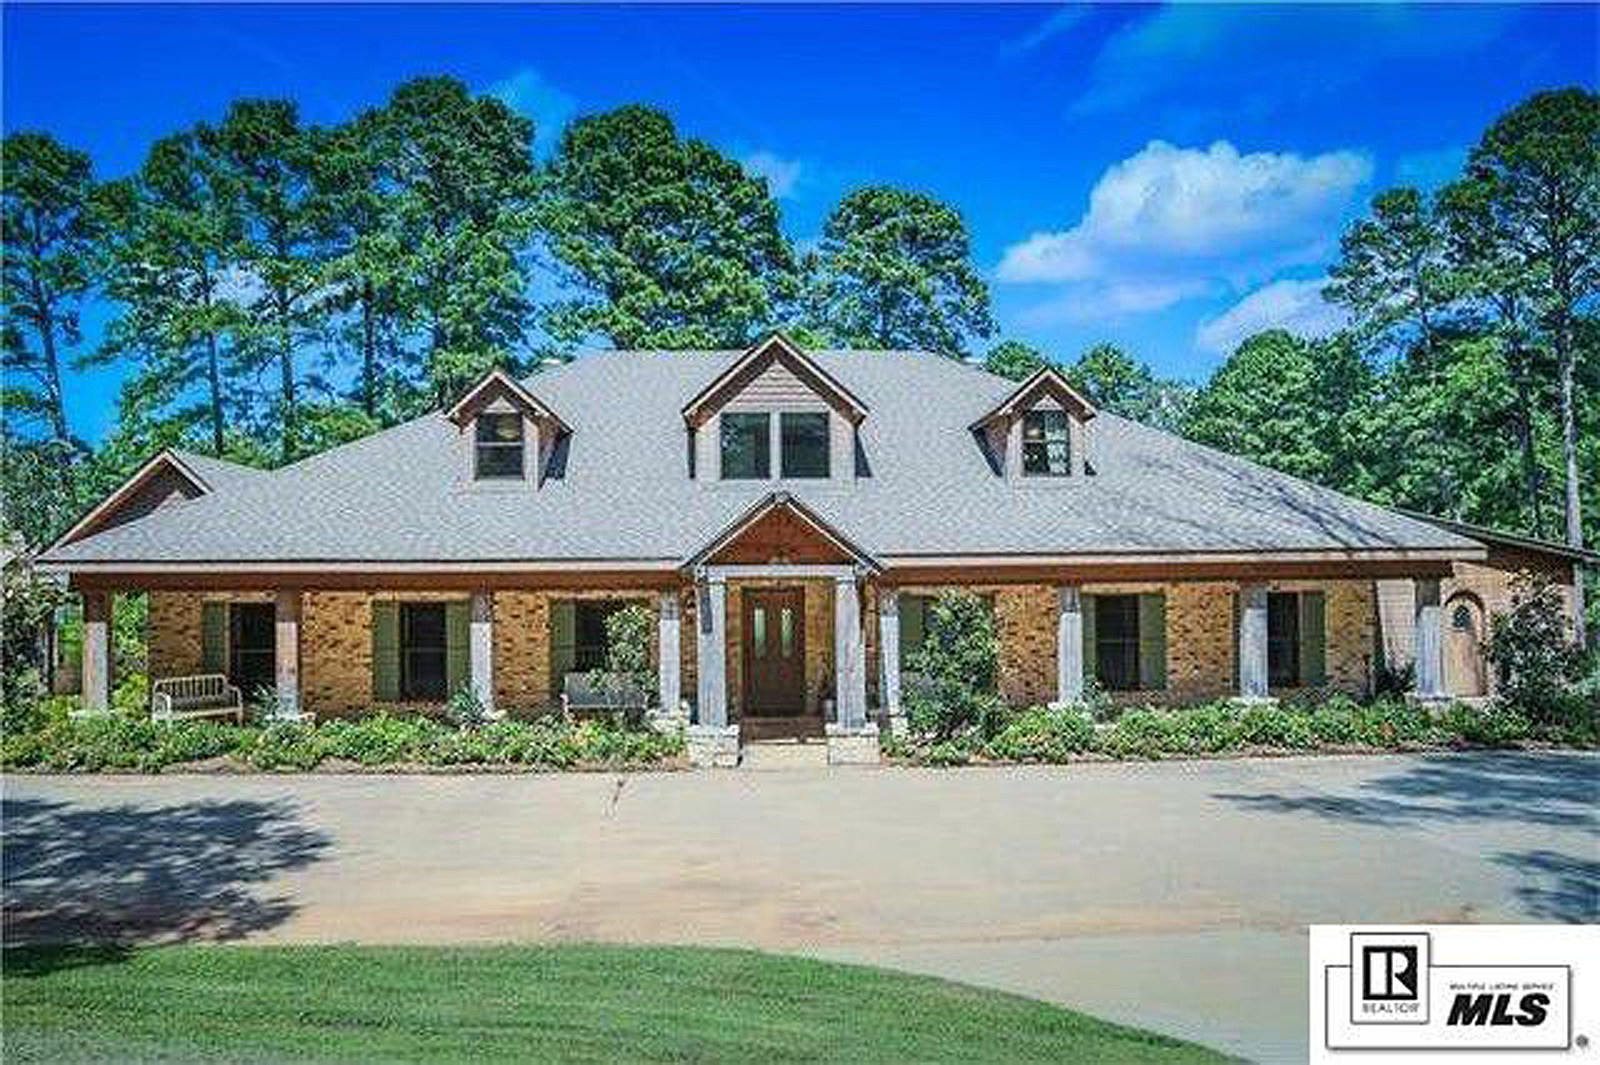 Duck Dynasty' Star Selling His Louisiana Estate [Pictures] on dynasty modular homes, duck commander mobile homes, top gear mobile homes, sherlock mobile homes,